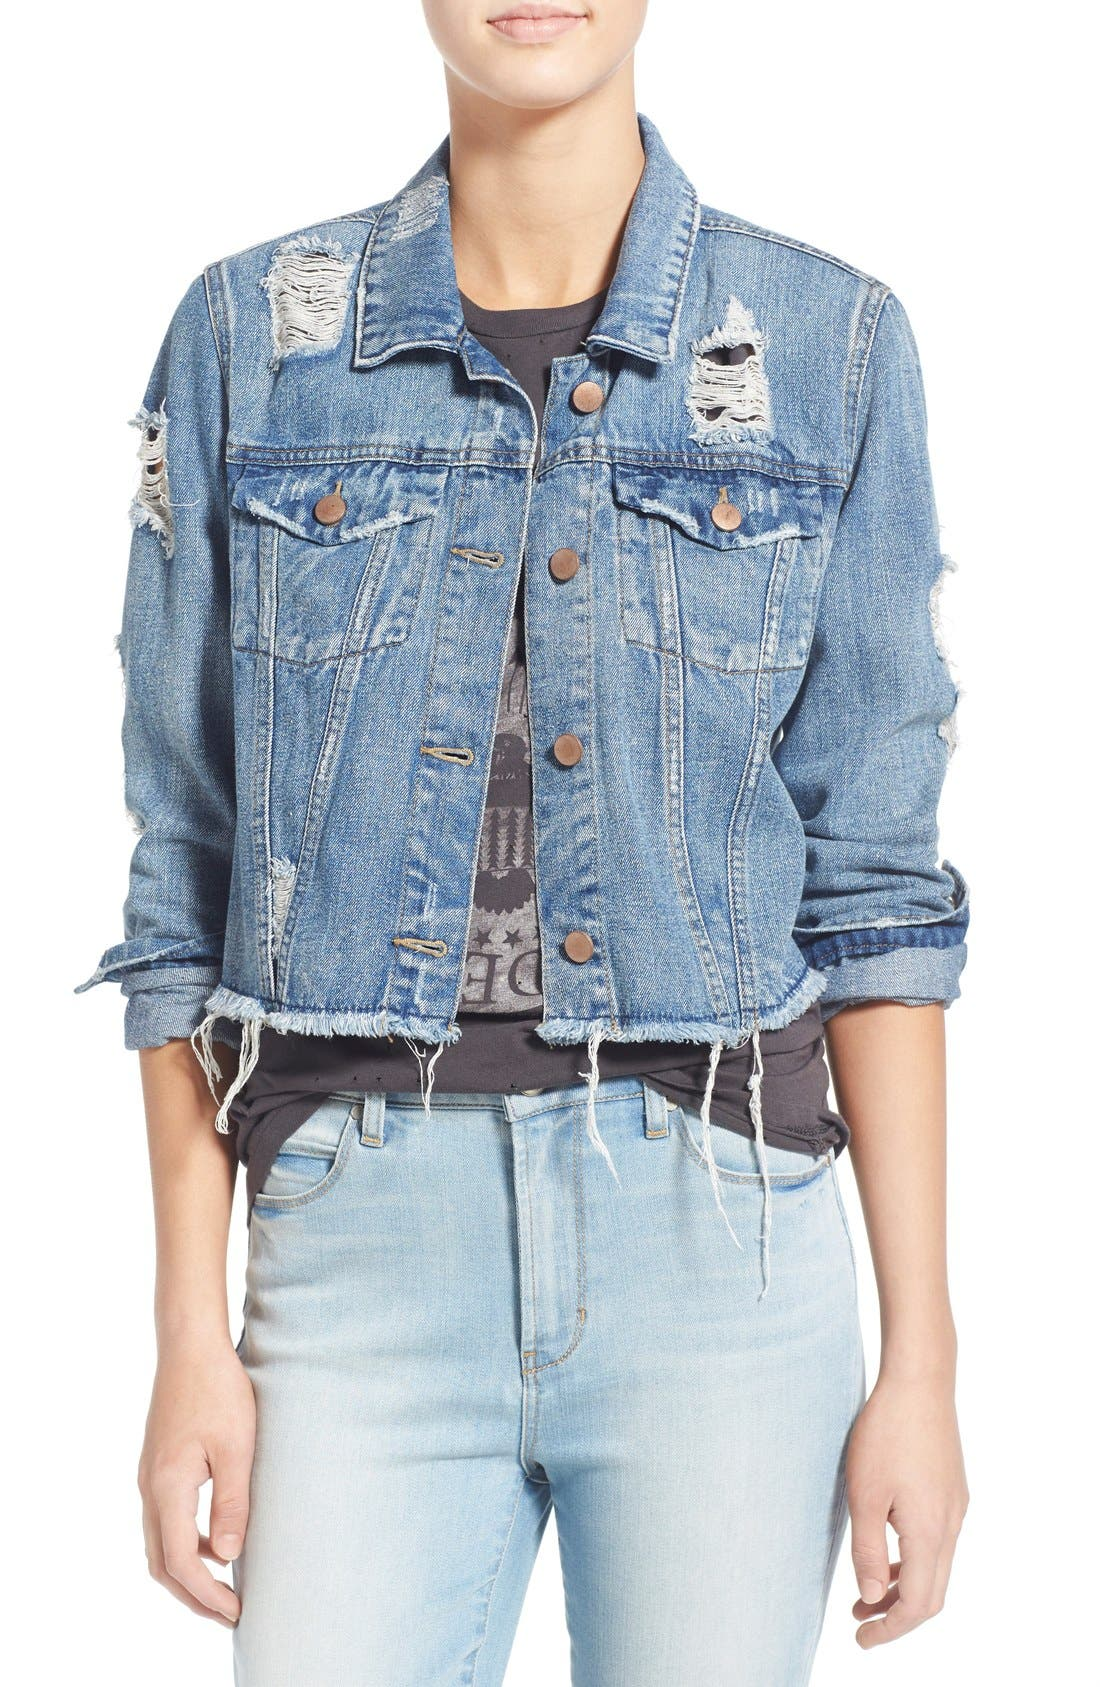 Alternate Image 1 Selected - Love, Fire Distressed Denim Jacket